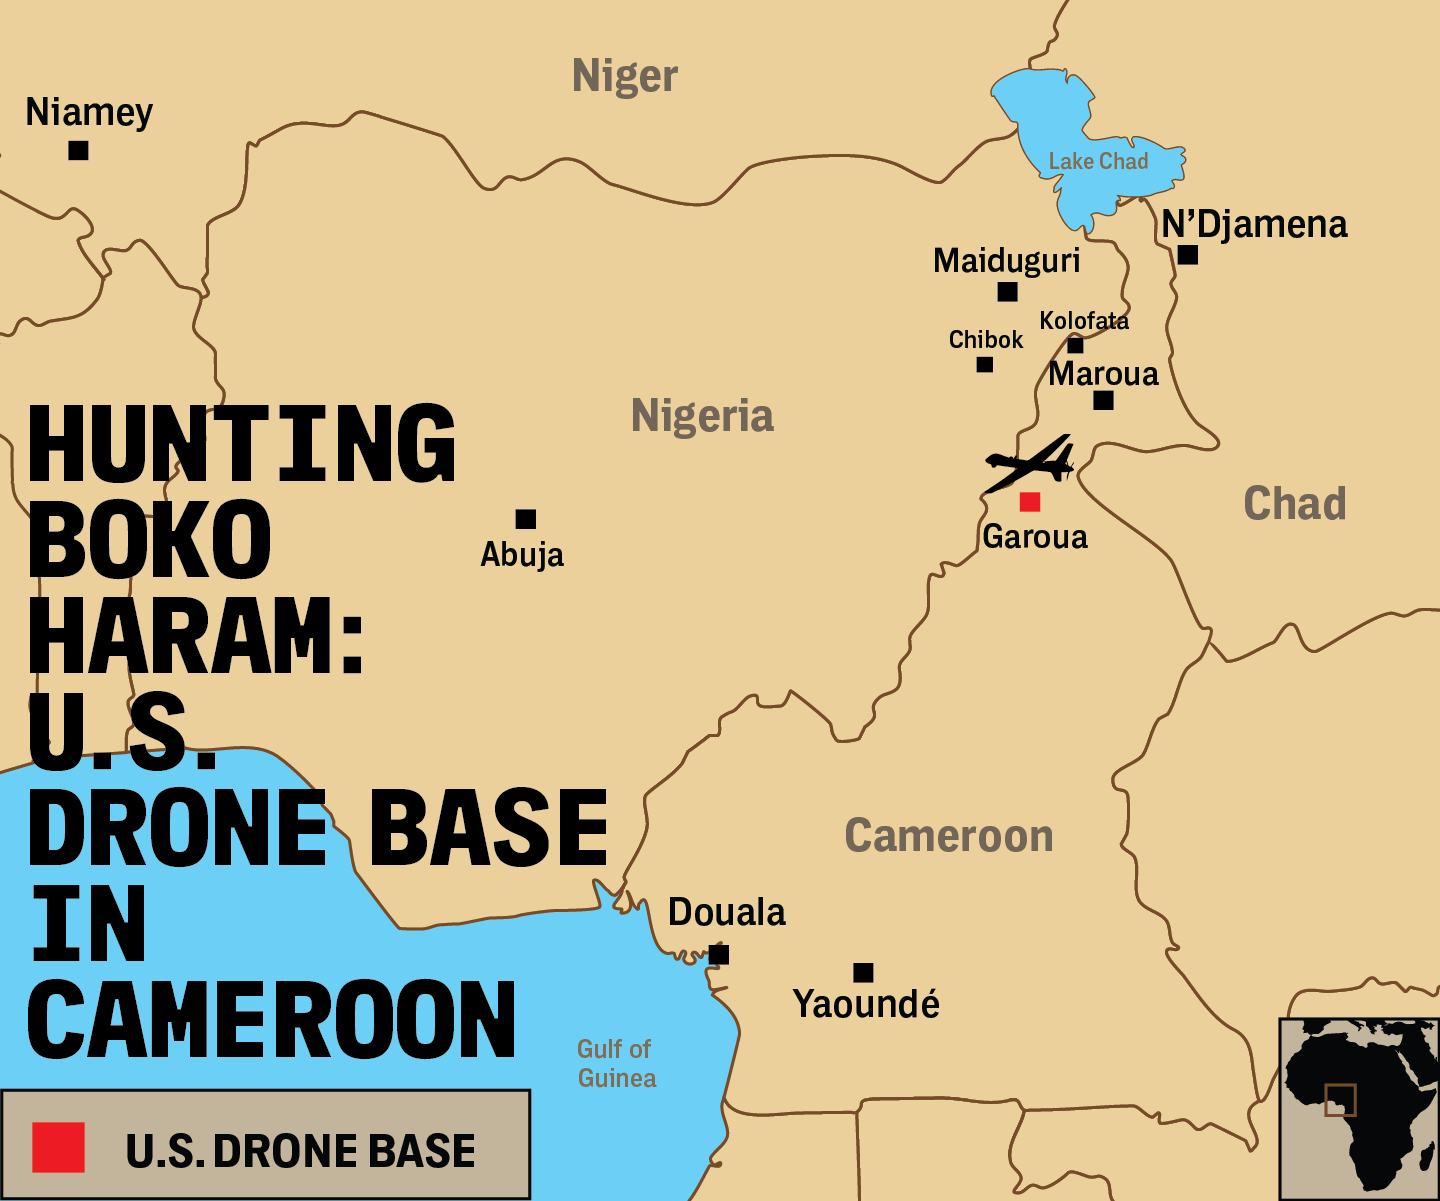 theintercept_drone_base_cameroon1